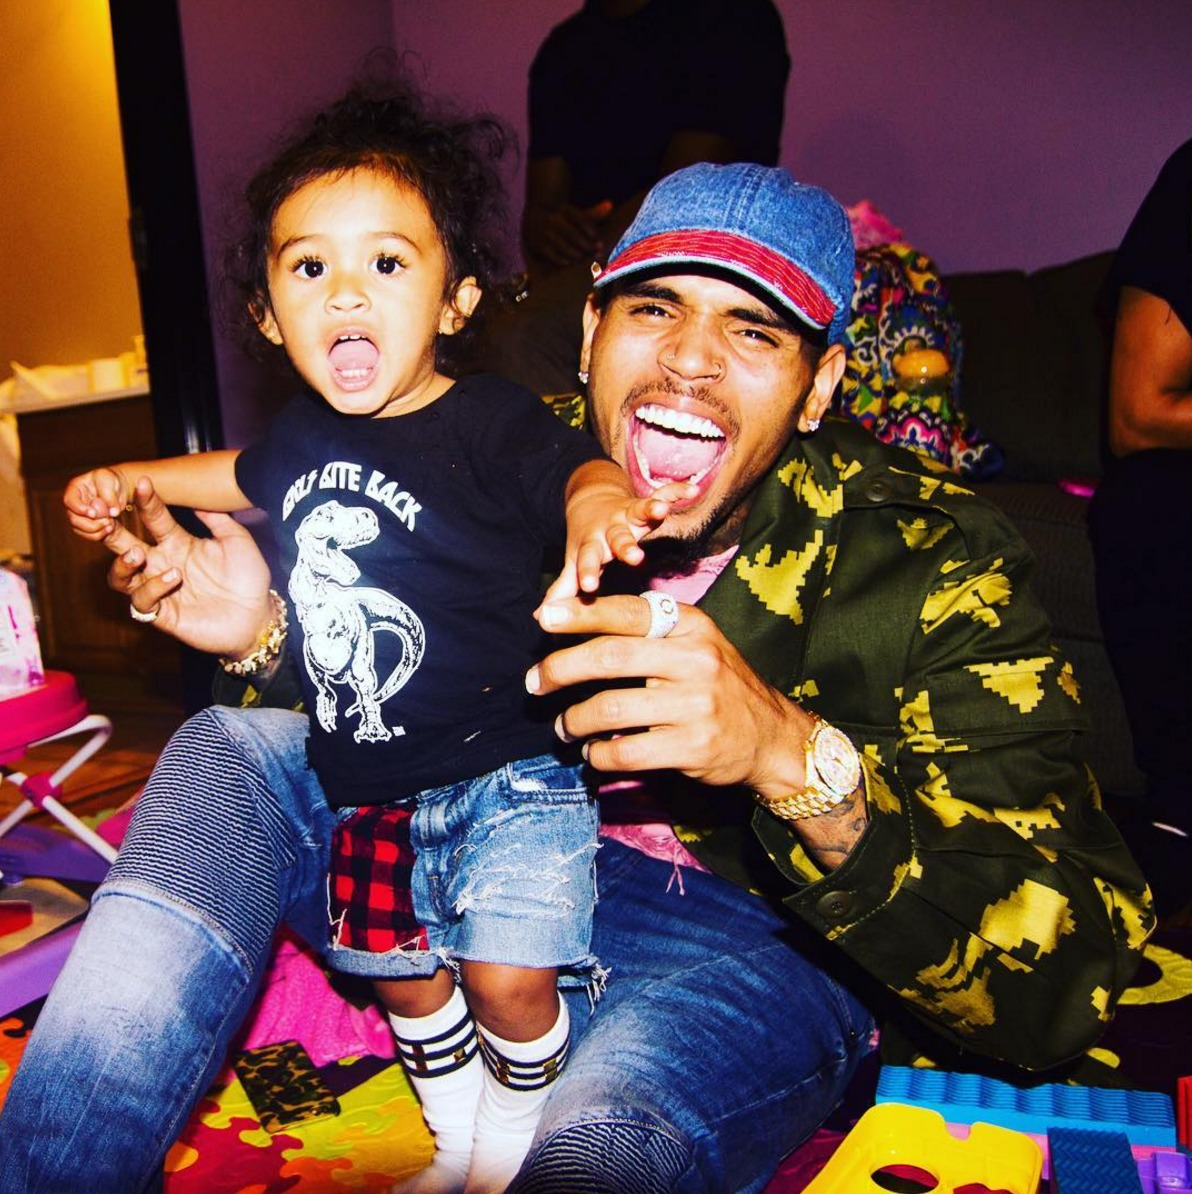 Chris Brown's Message And Photos In Honor Of His Baby Girl Royalty's Fifth Birthday Have Fans In Awe - See His Emotional Post